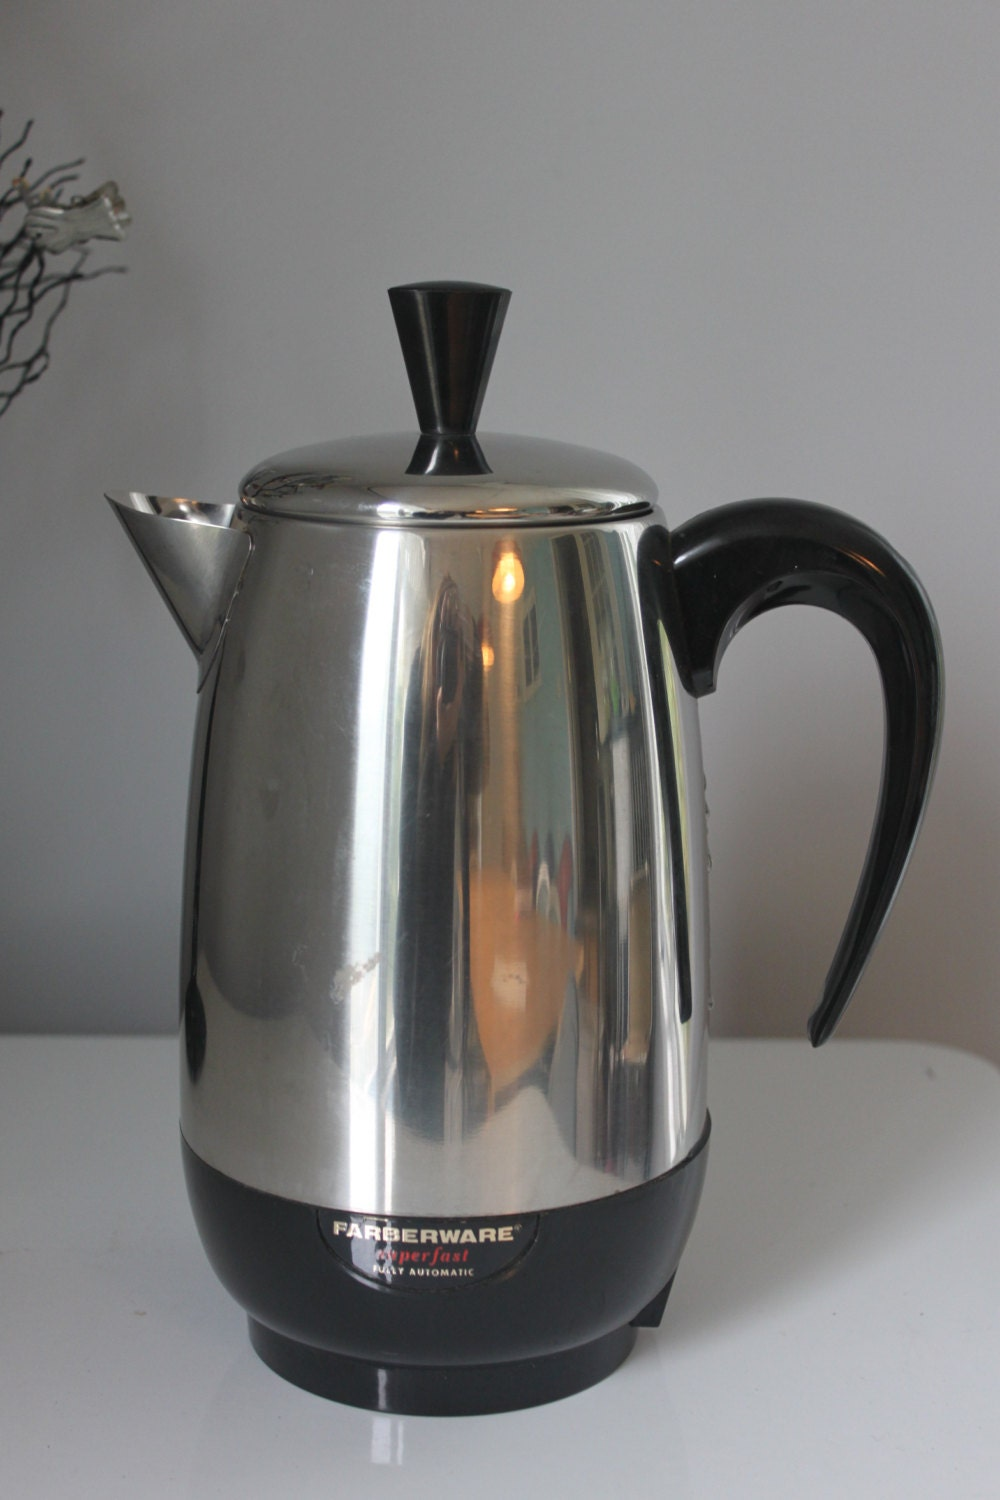 Farberware Coffee Maker Cleaning : Super clean-Vintage Farberware Superfast Chrome Percolator , Electric, 8 cups, Made in USA ...